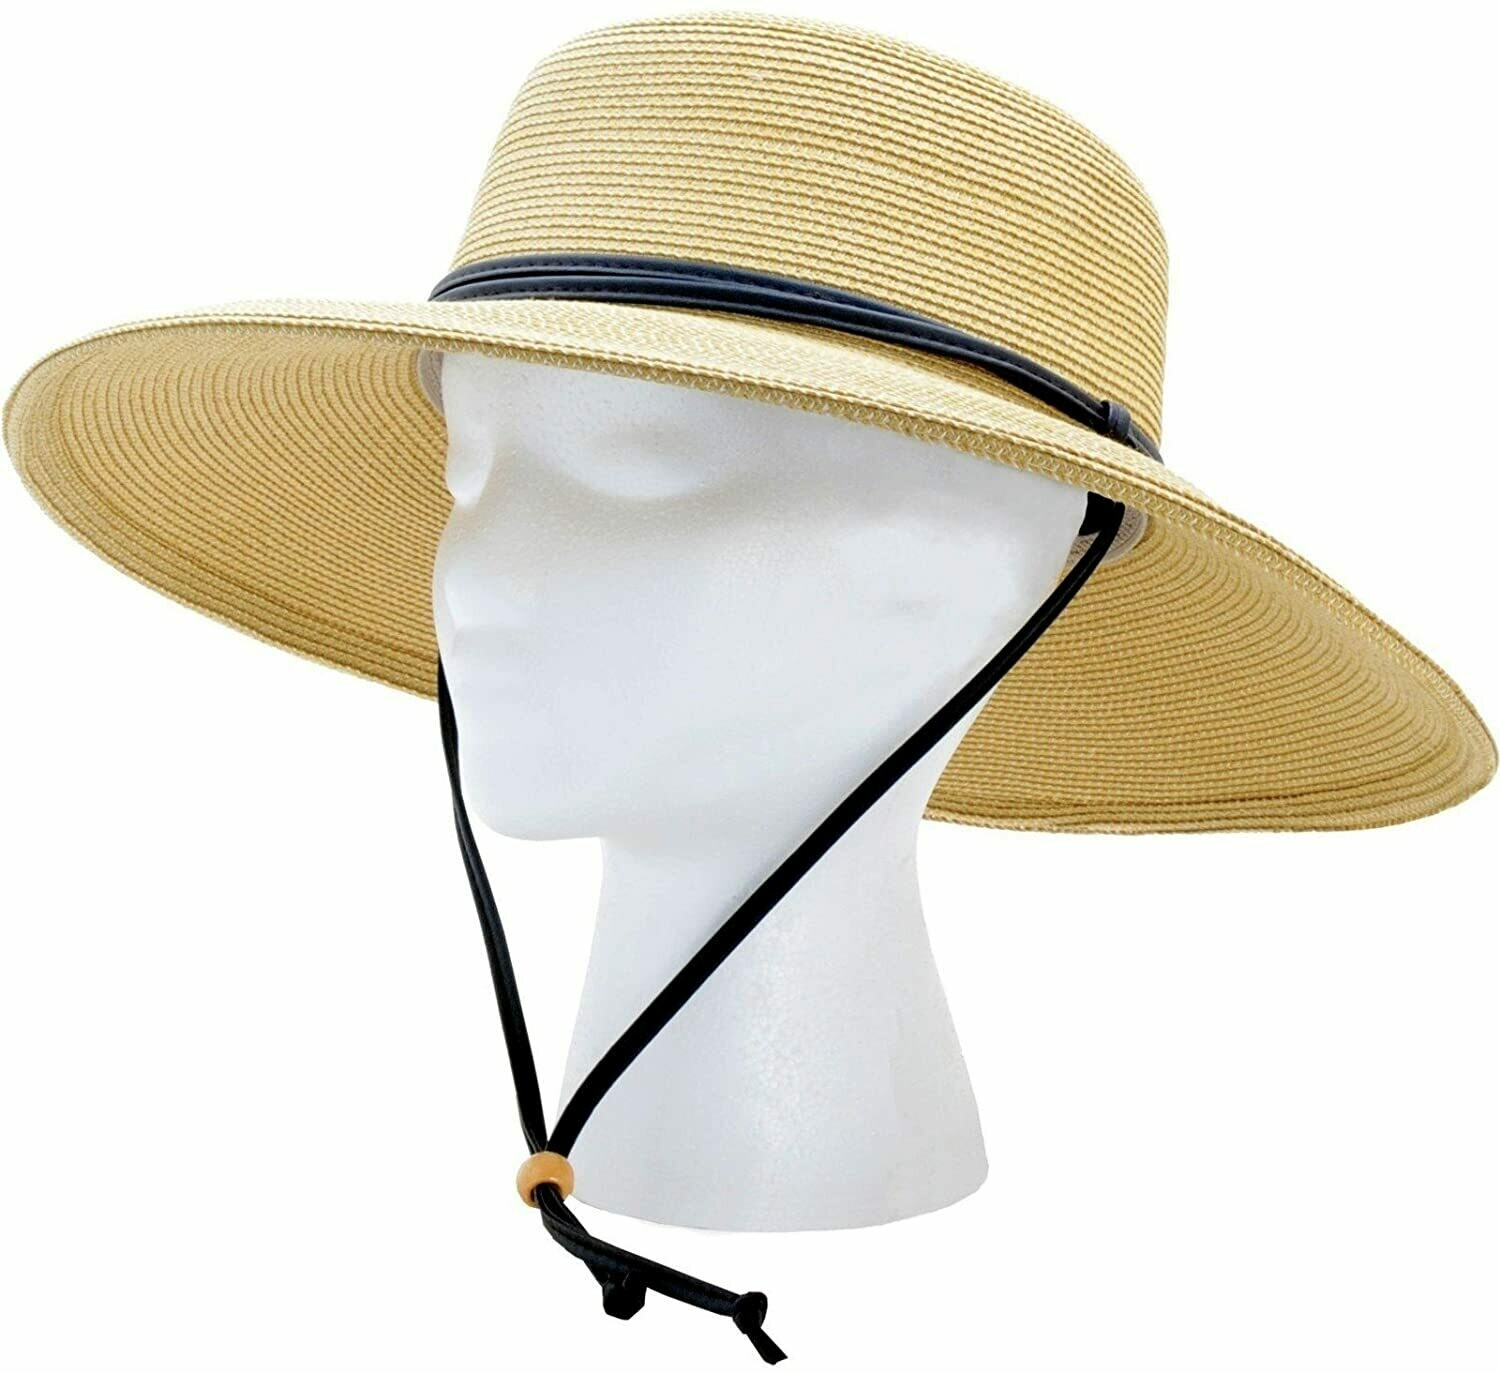 Hat Woman's Wide Brim Medium light brown